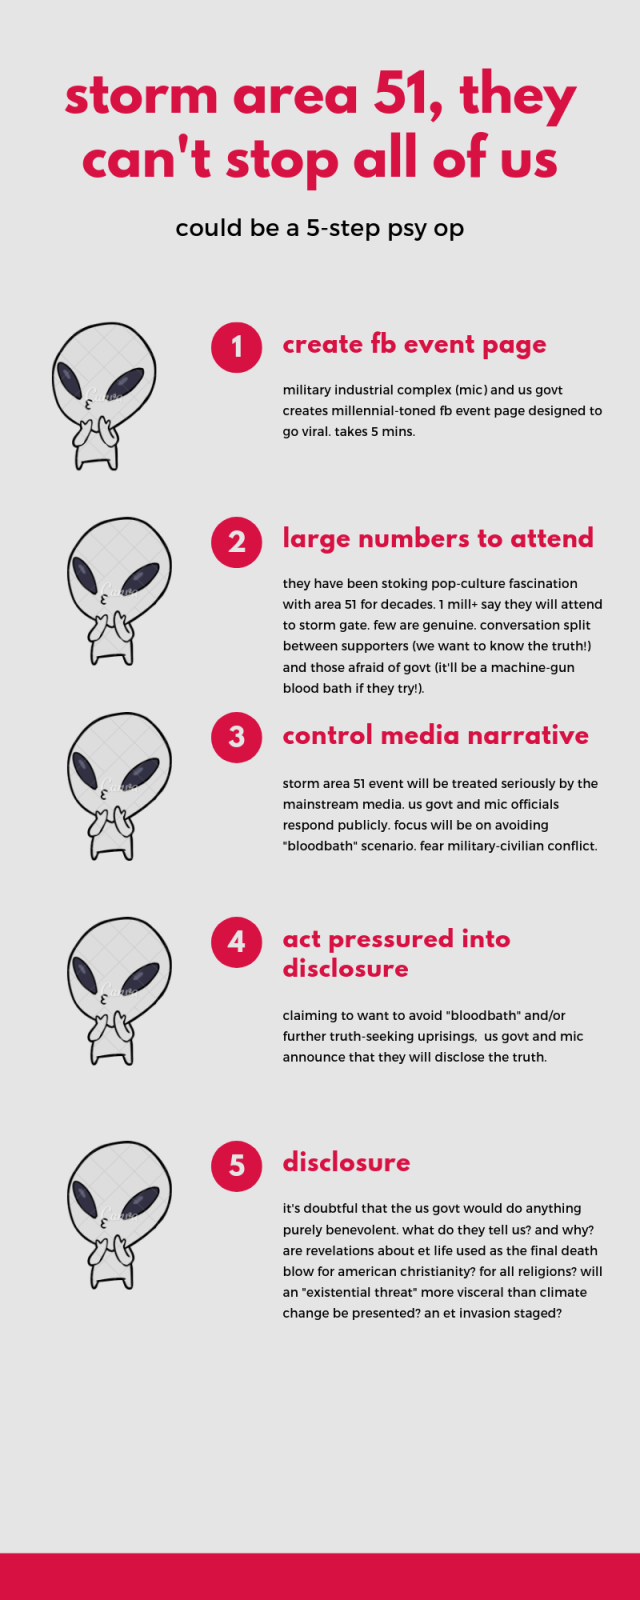 infographic with 5 steps explaining how the storm area 51, they can't stop all of us facebook event is a government orchestrated psychological operation. it could lead to alien disclosure about extraterrestrial life.